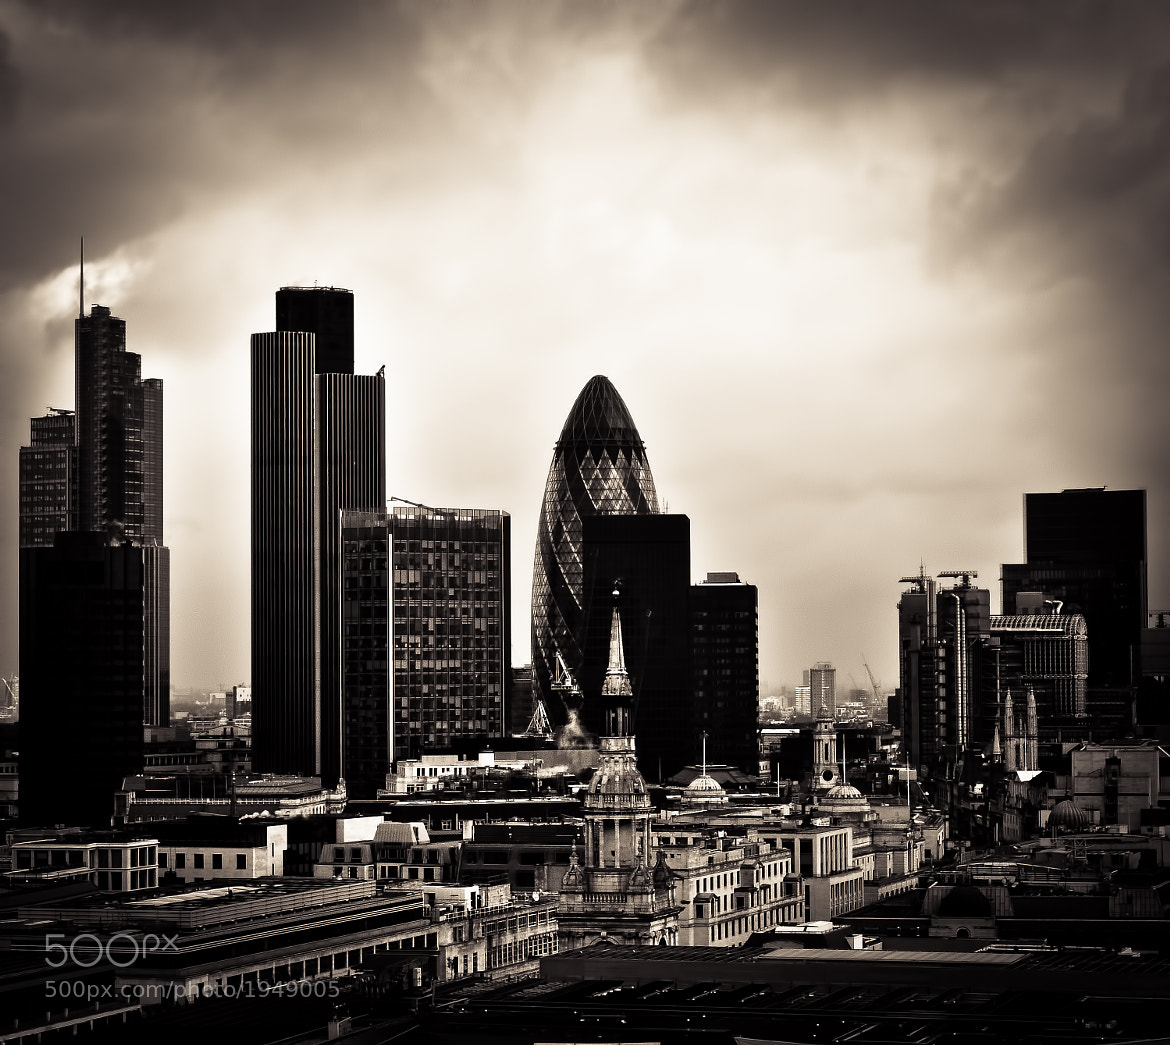 Photograph City of London by .Vulture Labs on 500px